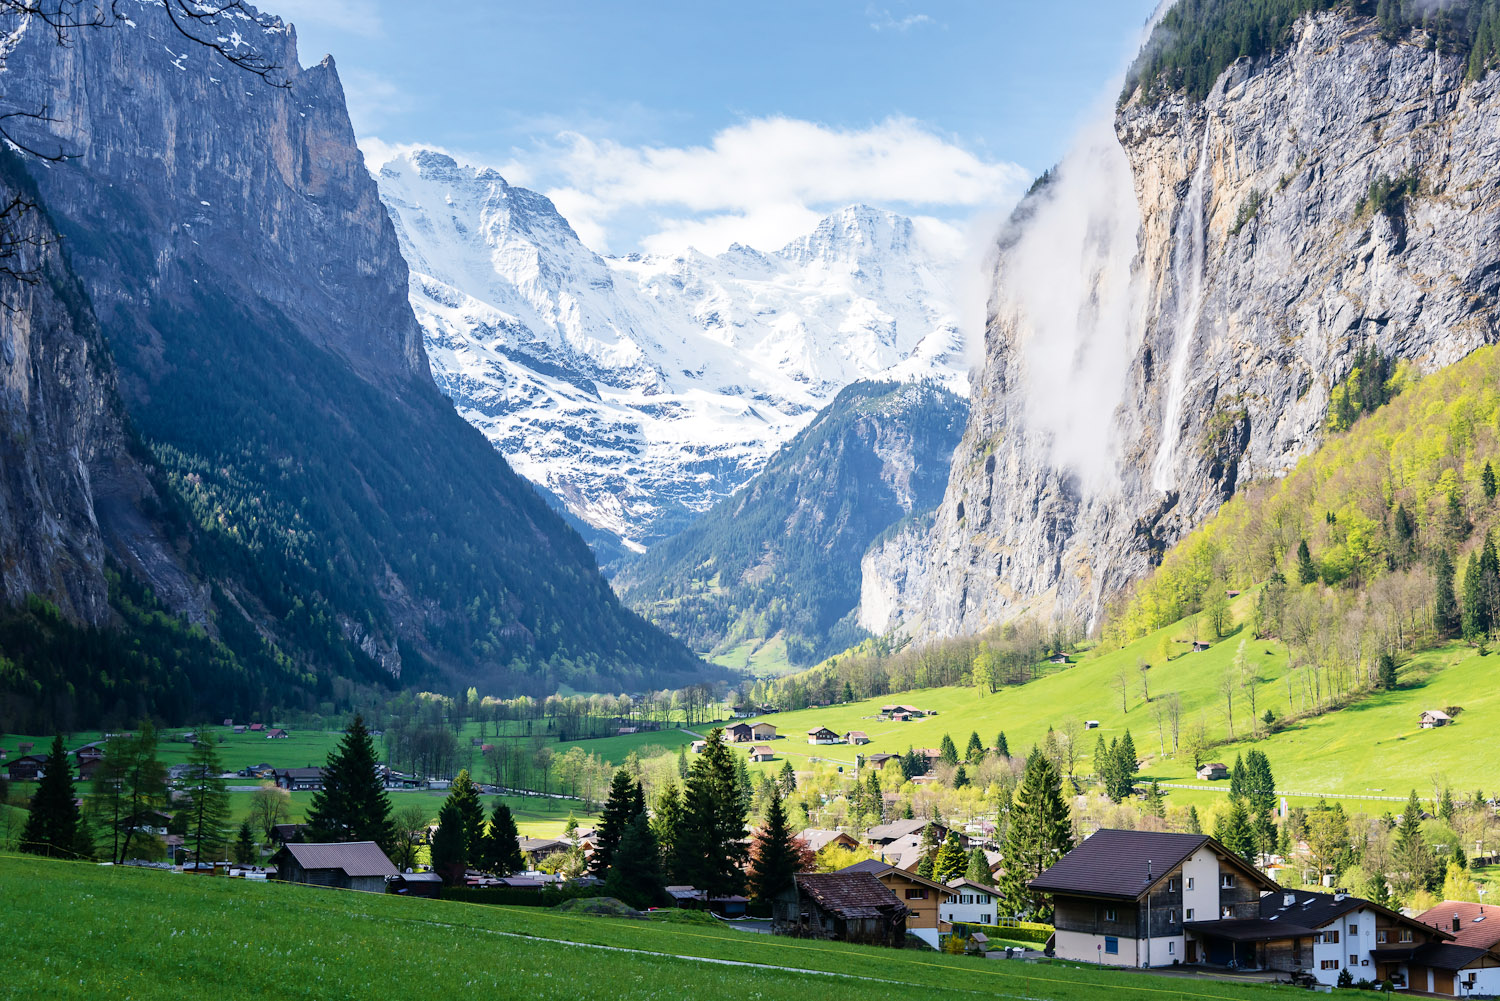 The ultimate road trip through the Swiss Alps ...